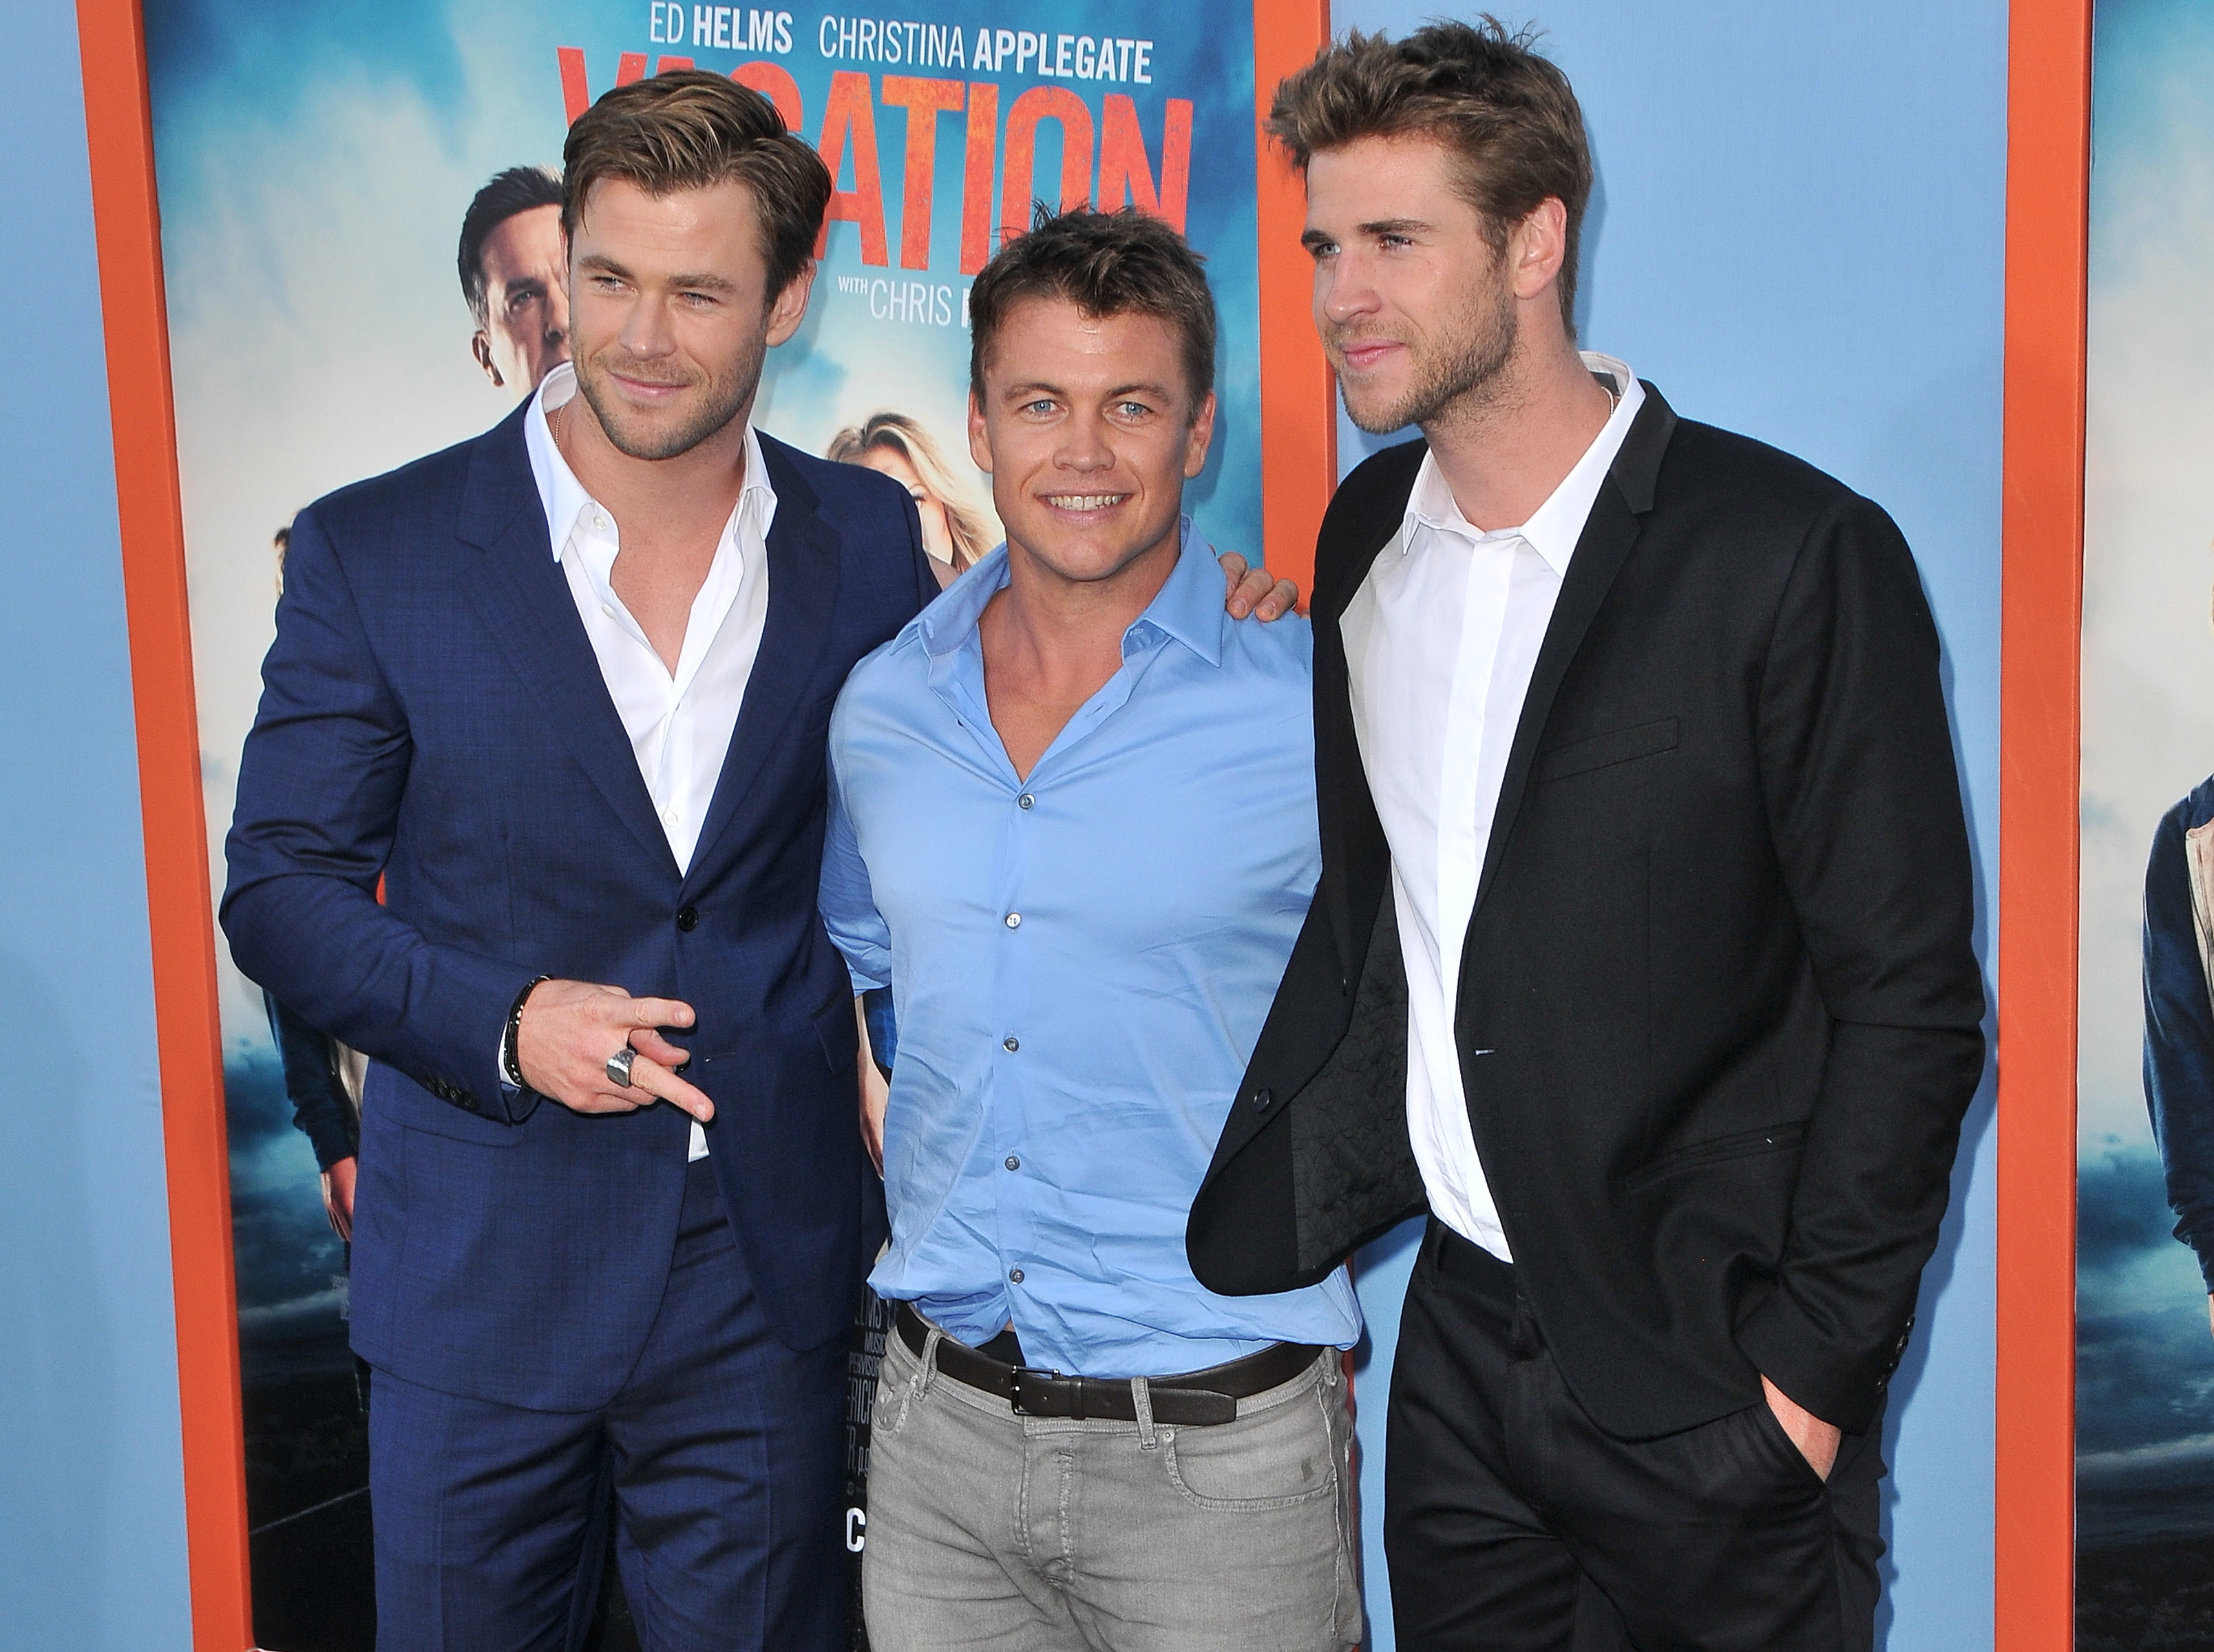 Chris Hemsworth, Luke Hemsworth and Liam Hemsworth